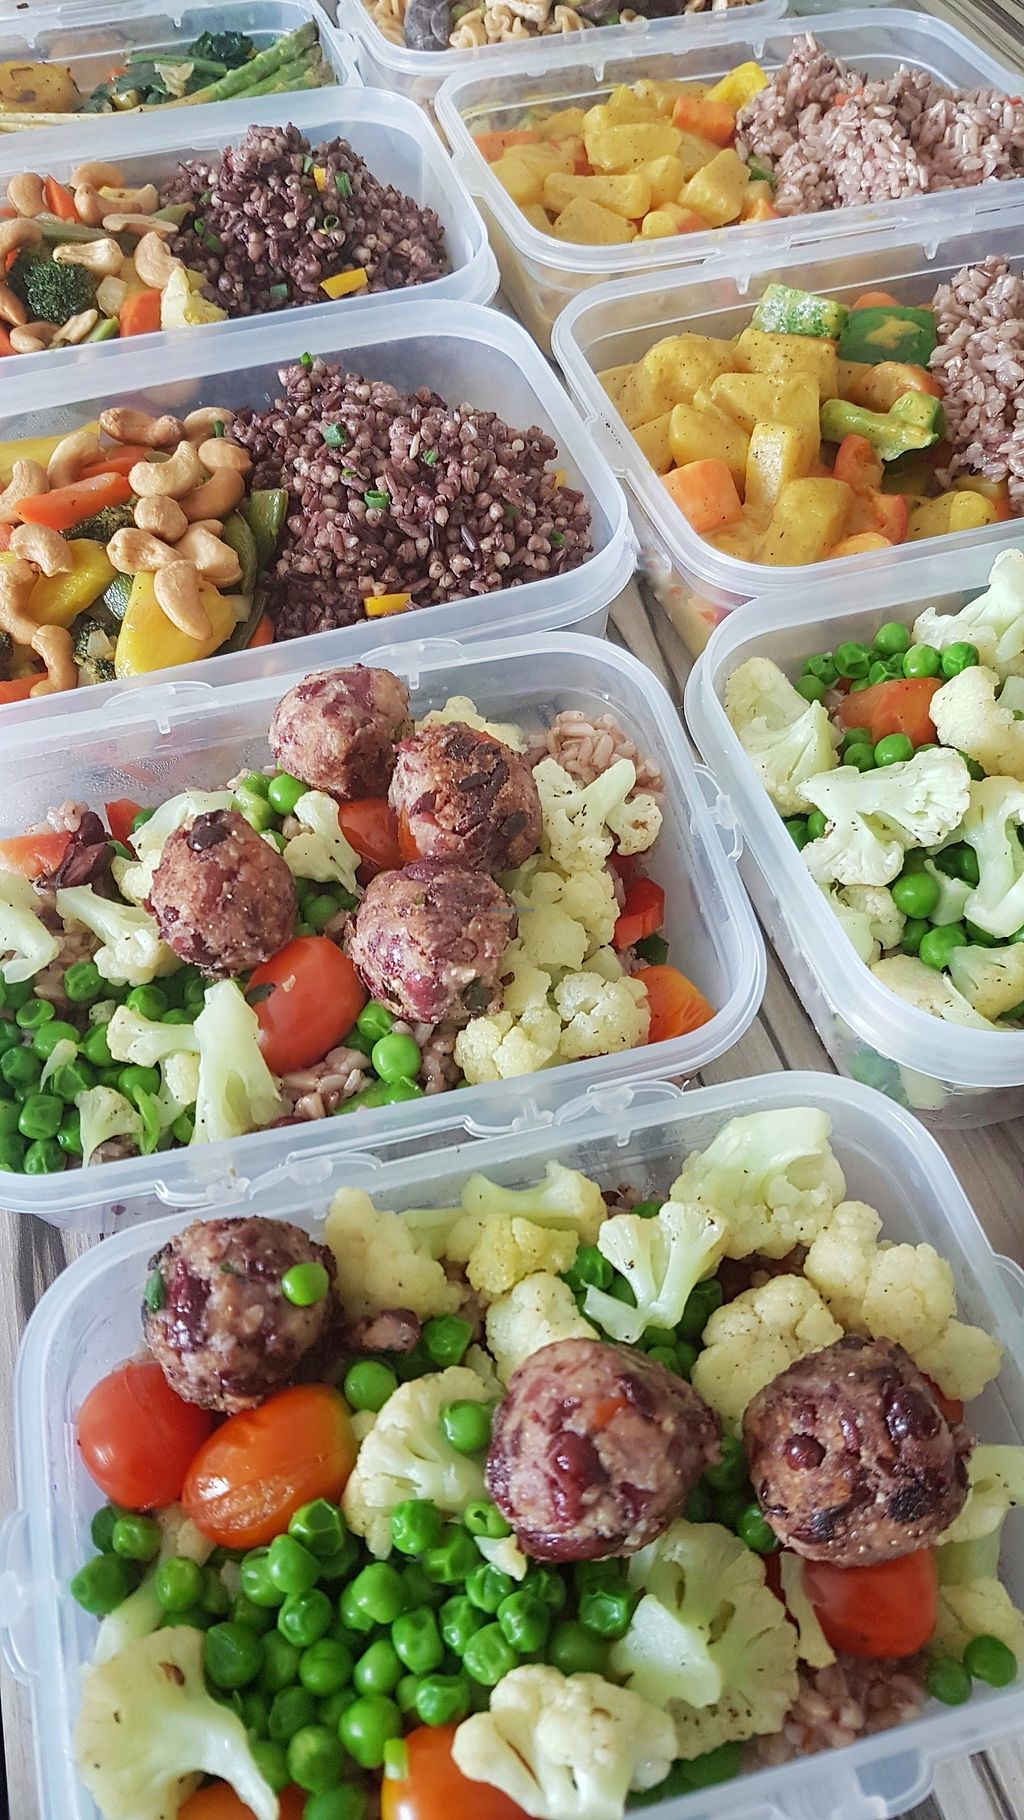 """Photo of Vegan Crush Food Delivery  by <a href=""""/members/profile/VeganCrush"""">VeganCrush</a> <br/>Fit protein balls on sautéed summer vegetables.  Colorful and healthy meals freshly prepared and delivered to you every Monday.  <br/> December 17, 2017  - <a href='/contact/abuse/image/107331/336432'>Report</a>"""